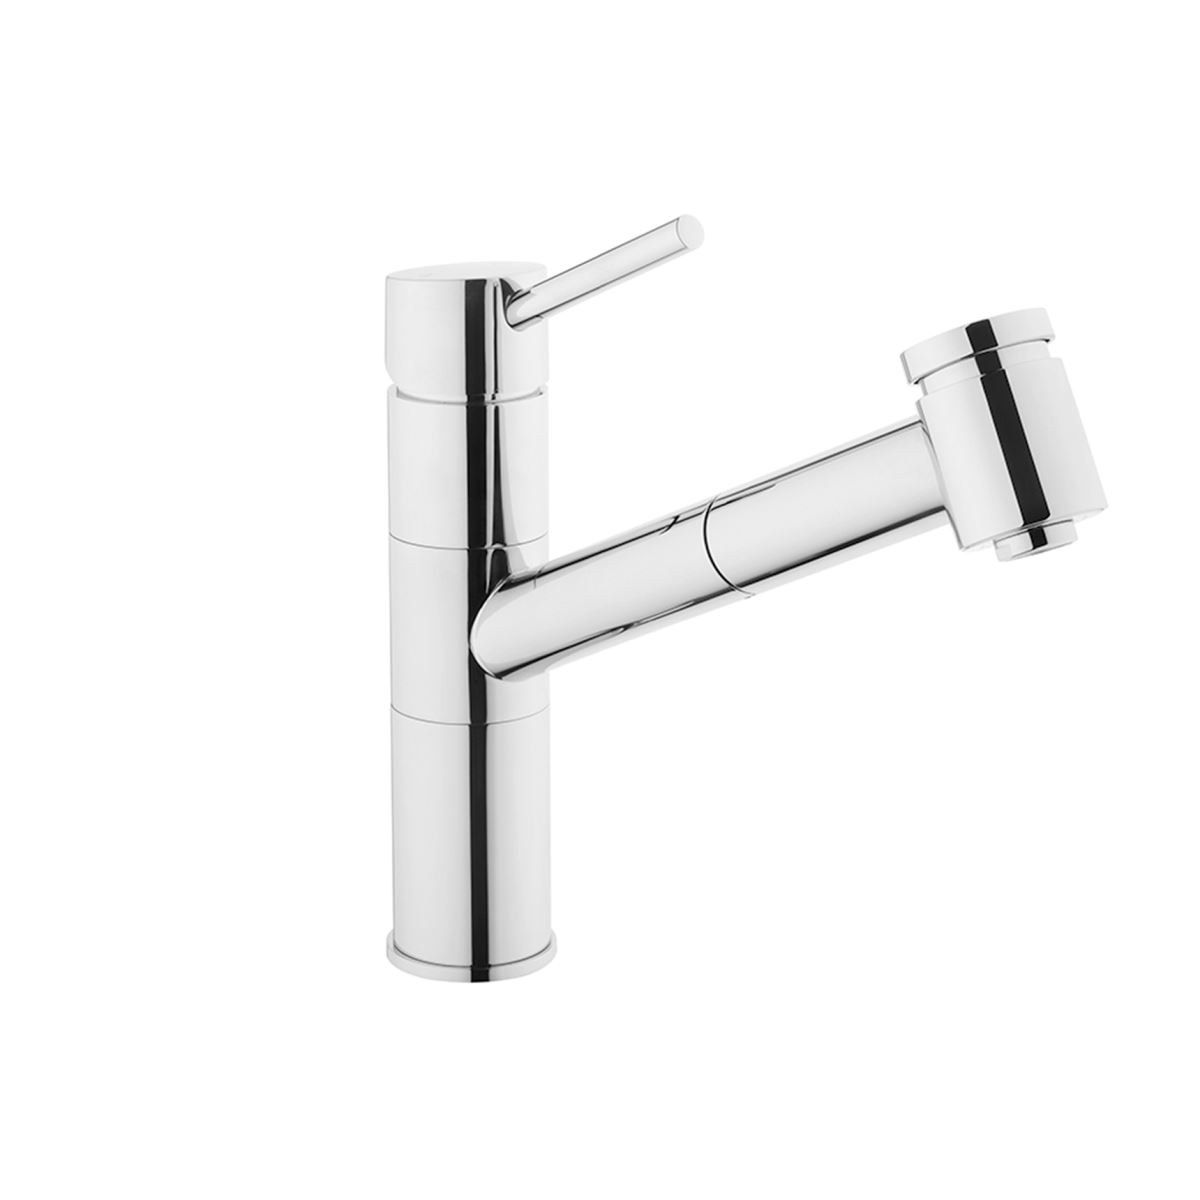 Sink Mixer Harmony XL Pull-Out